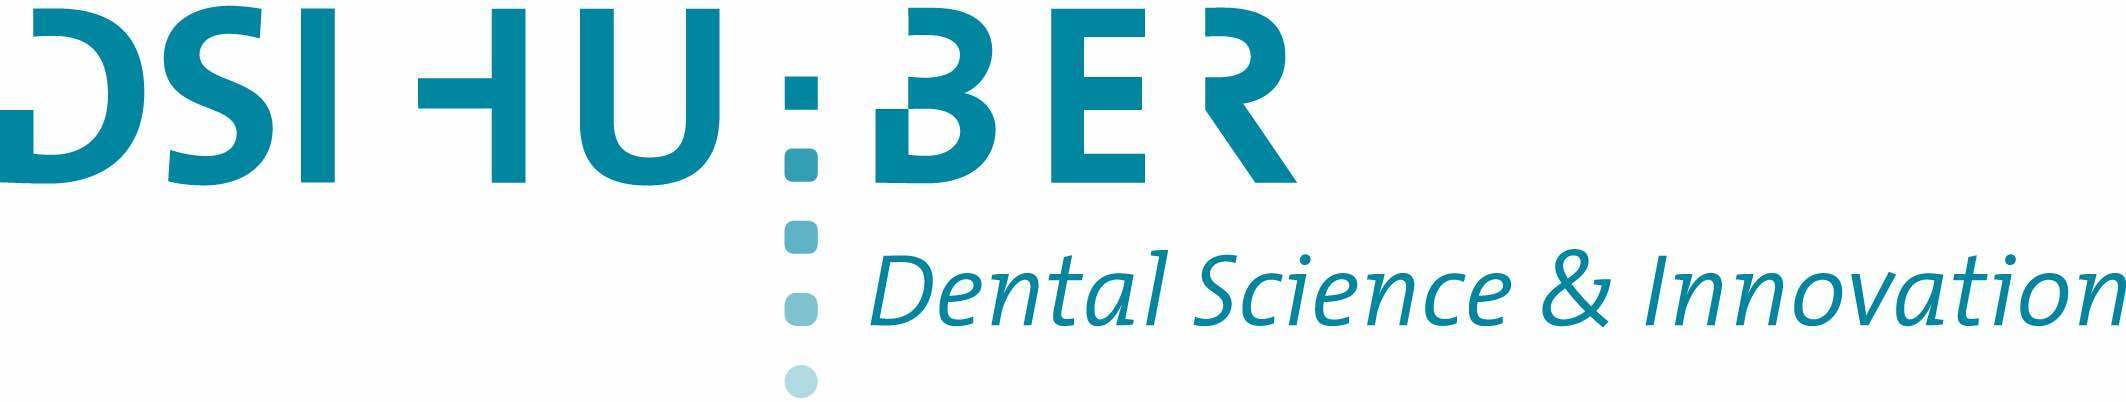 DSI HUBER - Dental Science & Innovation